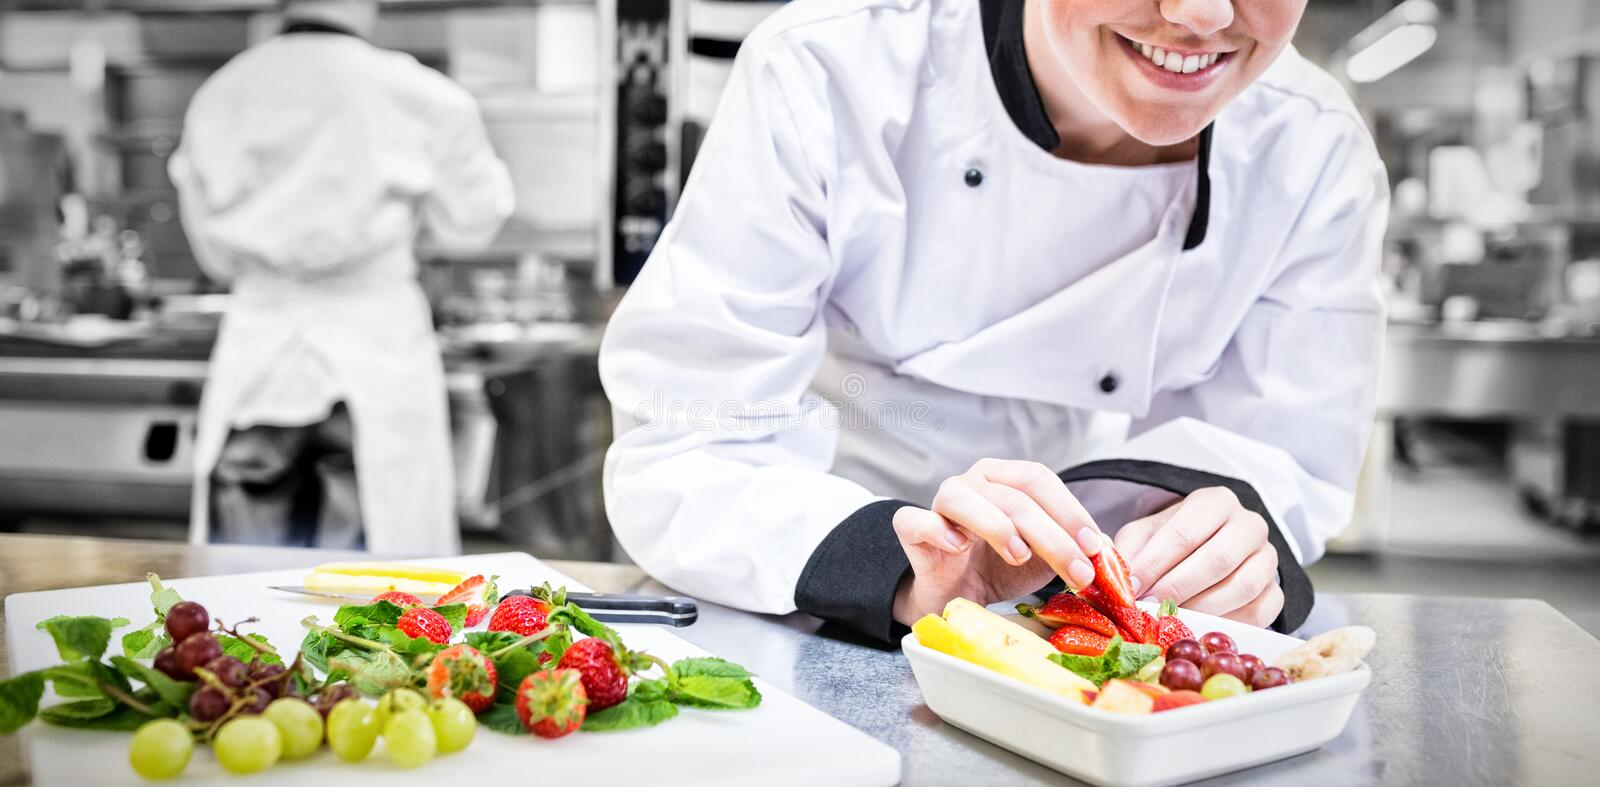 Smiling chef putting a strawberry in the fruit bowl royalty free stock photography